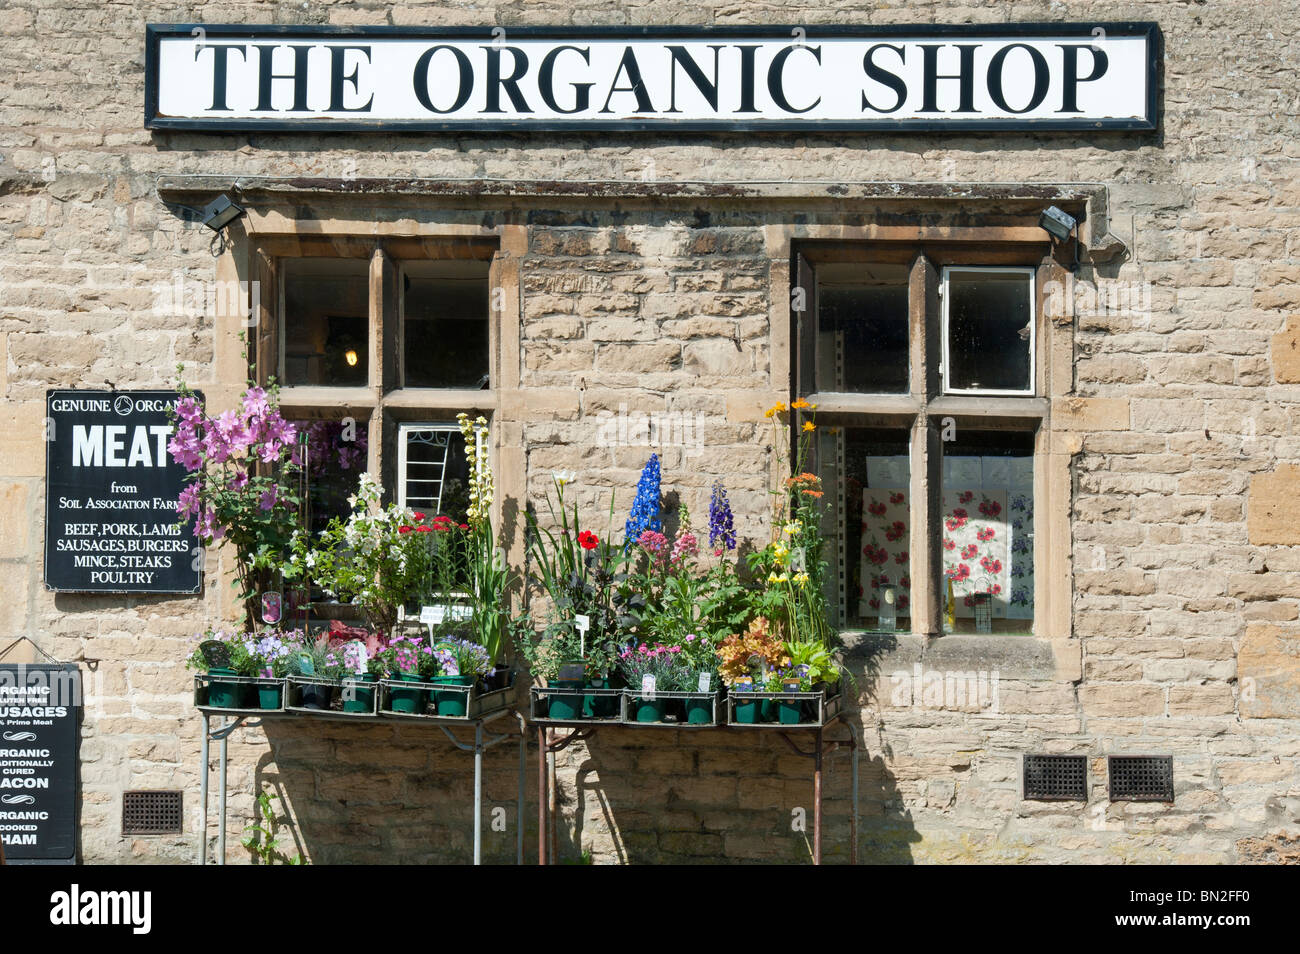 The Organic shop, Stow On the Wold, Cotswolds, Gloucestershire, England Stock Photo